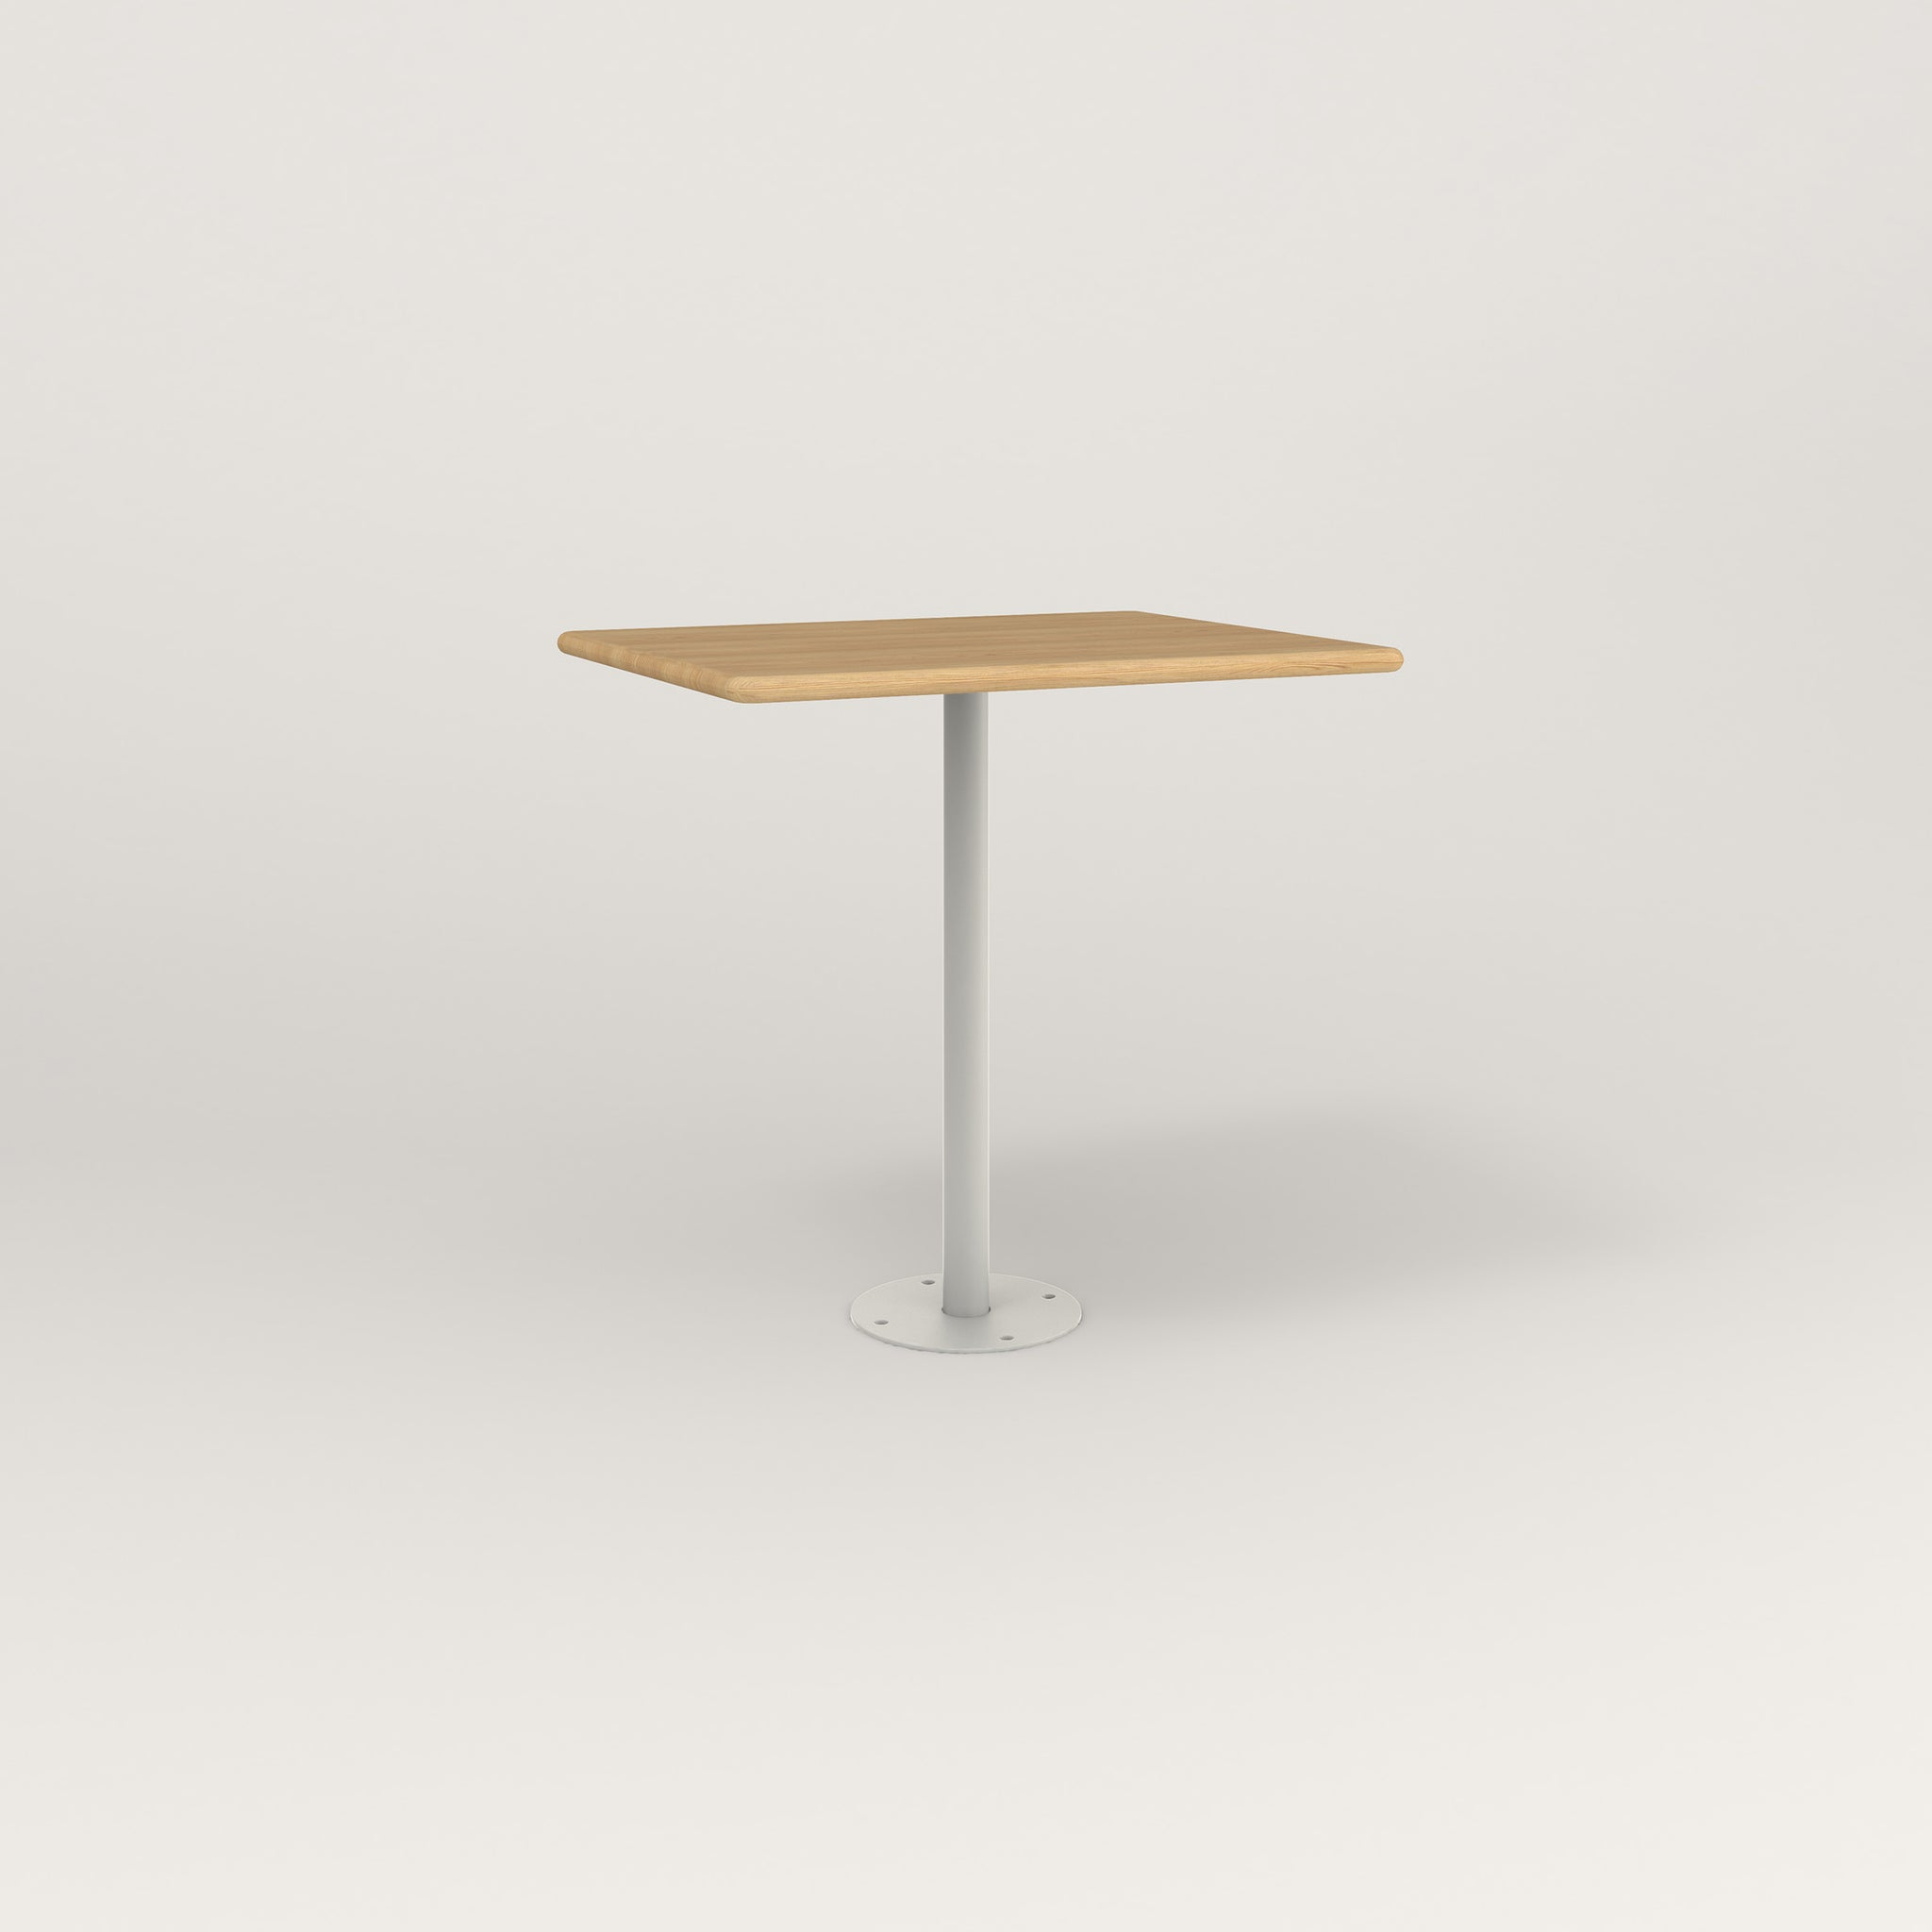 RAD Cafe Table, Rectangular Bolt Down Base in solid white oak and white powder coat.